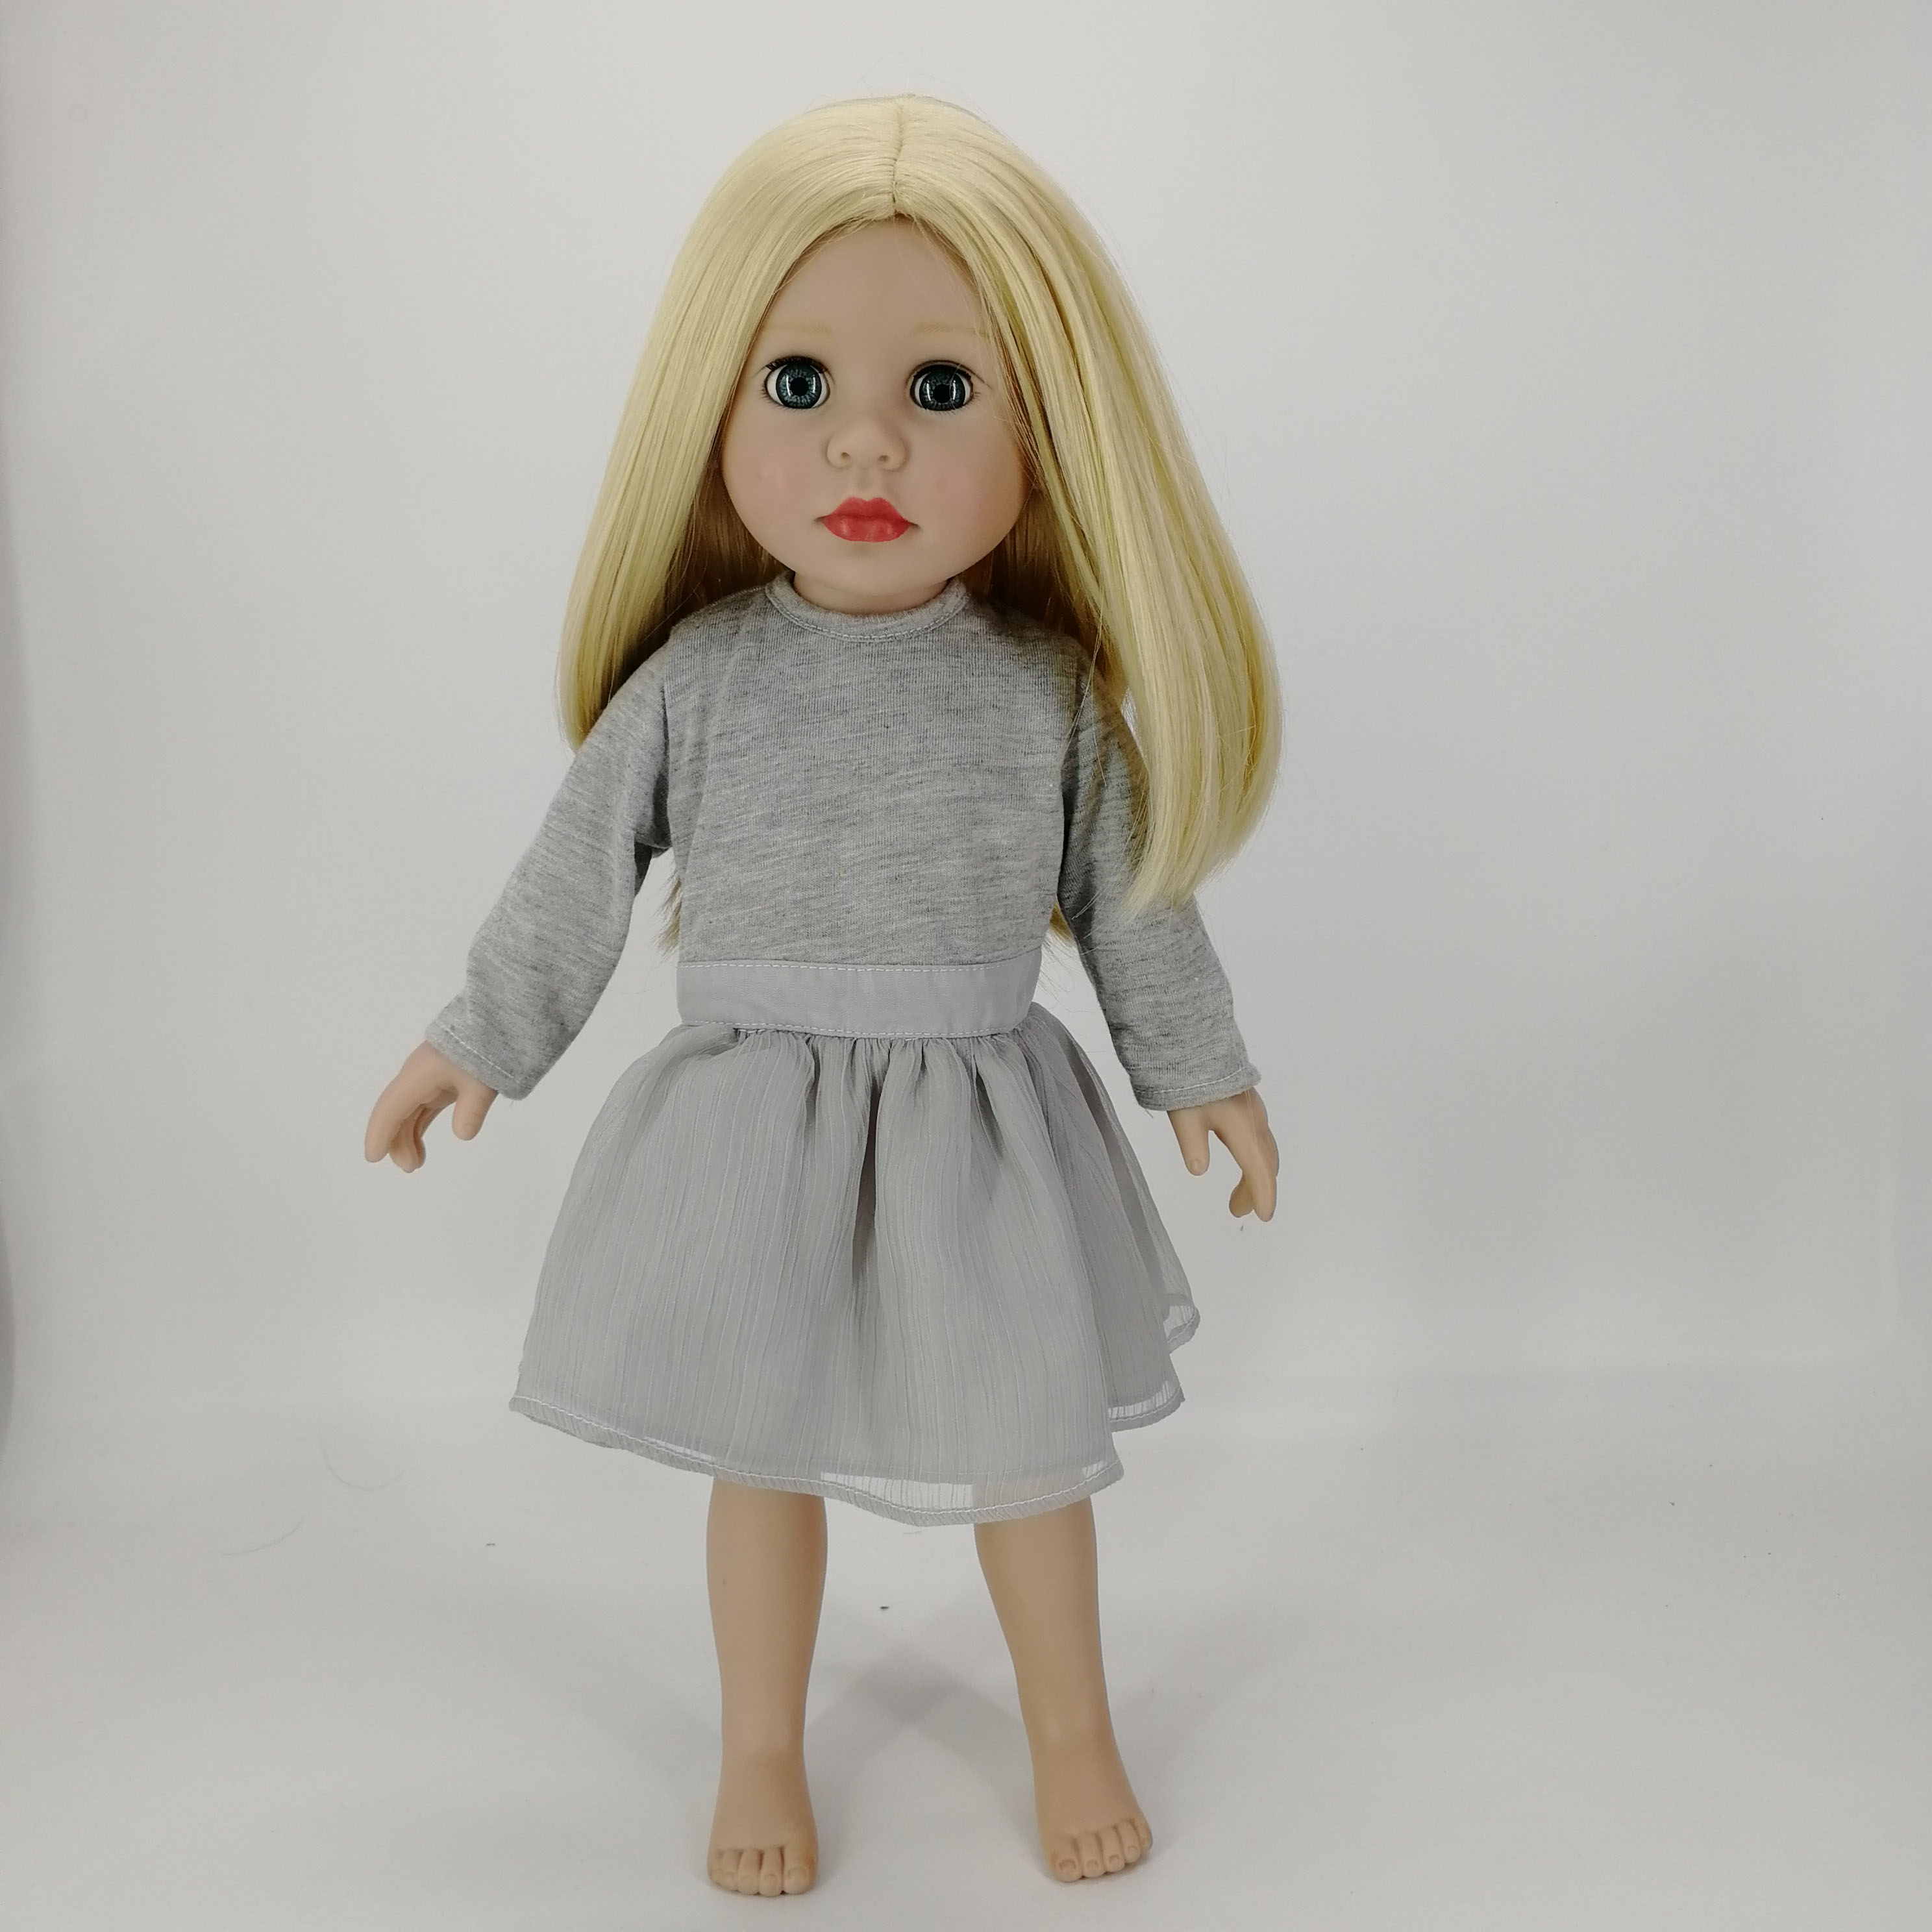 Doll clothes and accessories set